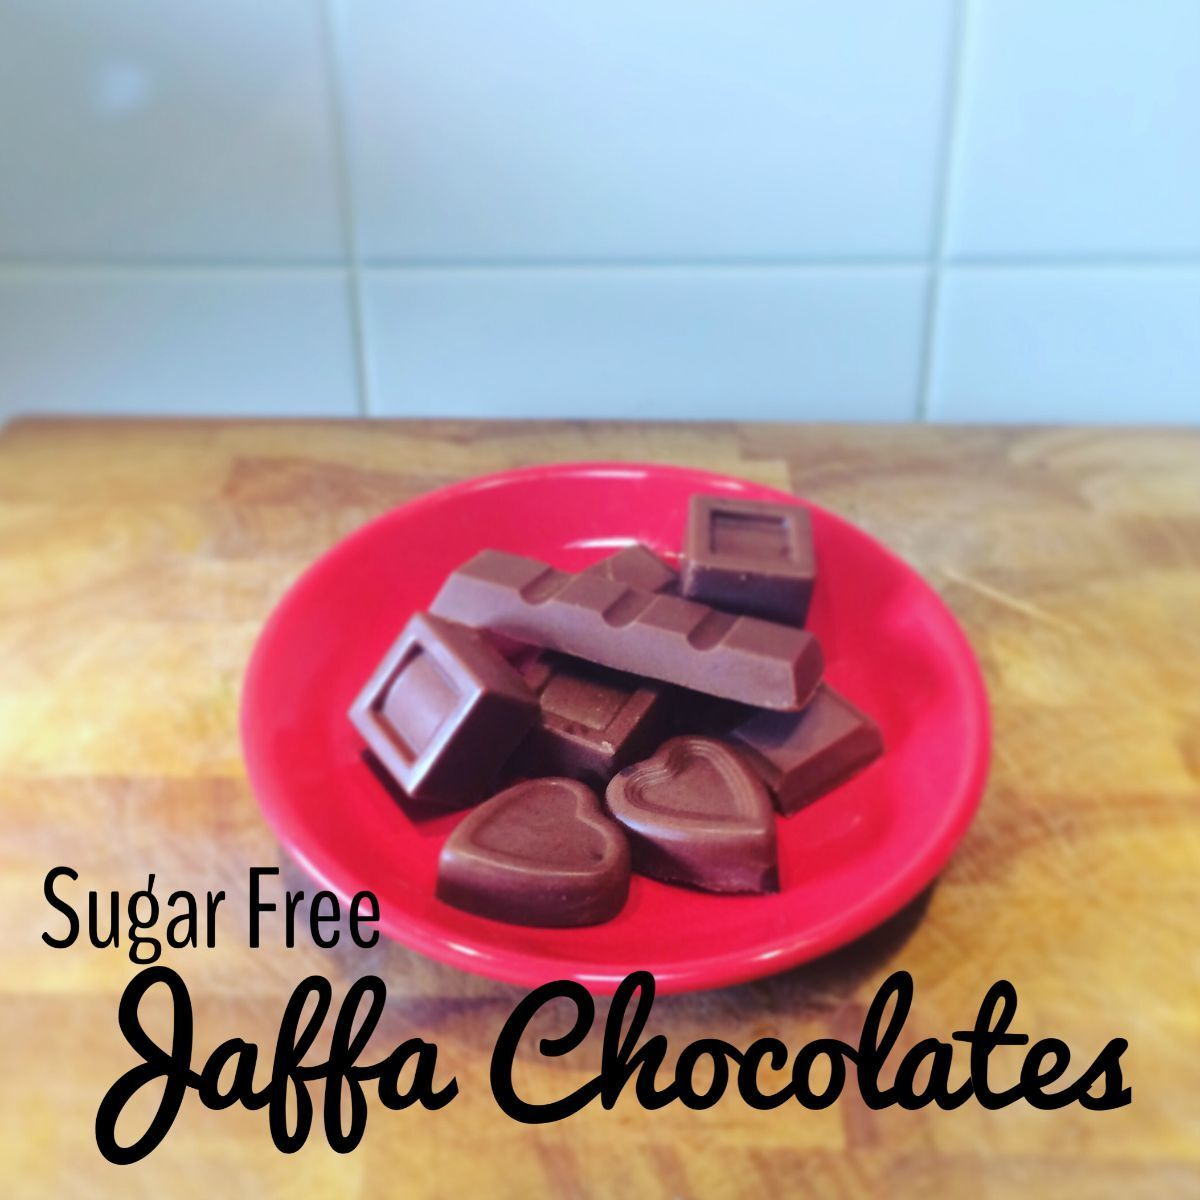 Sugar Free Jaffa Chocolates